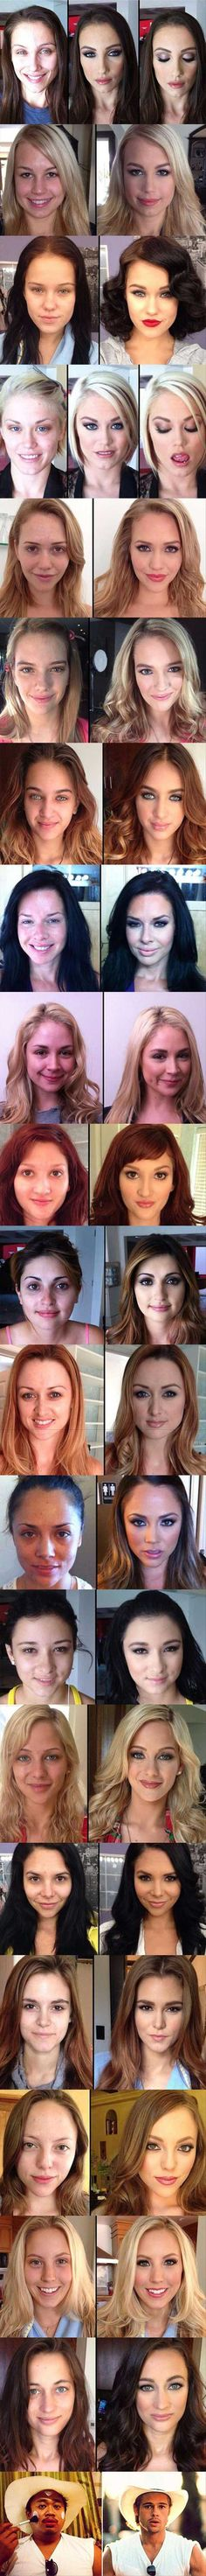 behold the power of makeup